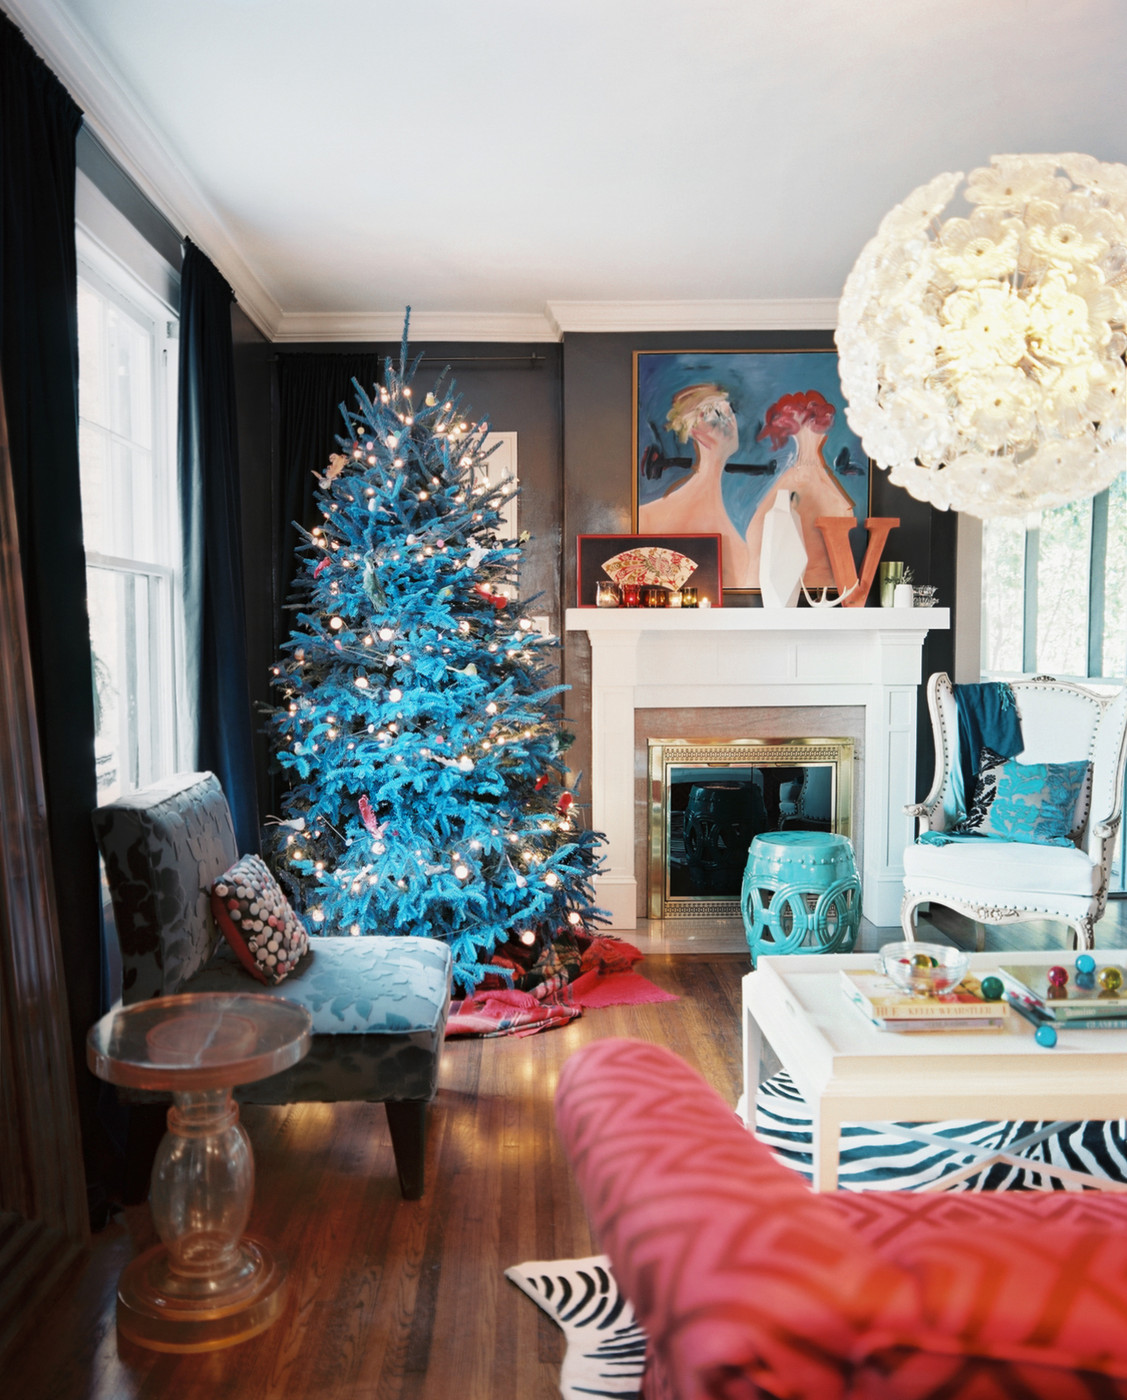 Art over fireplace photos design ideas remodel and - Over the fireplace decor ...